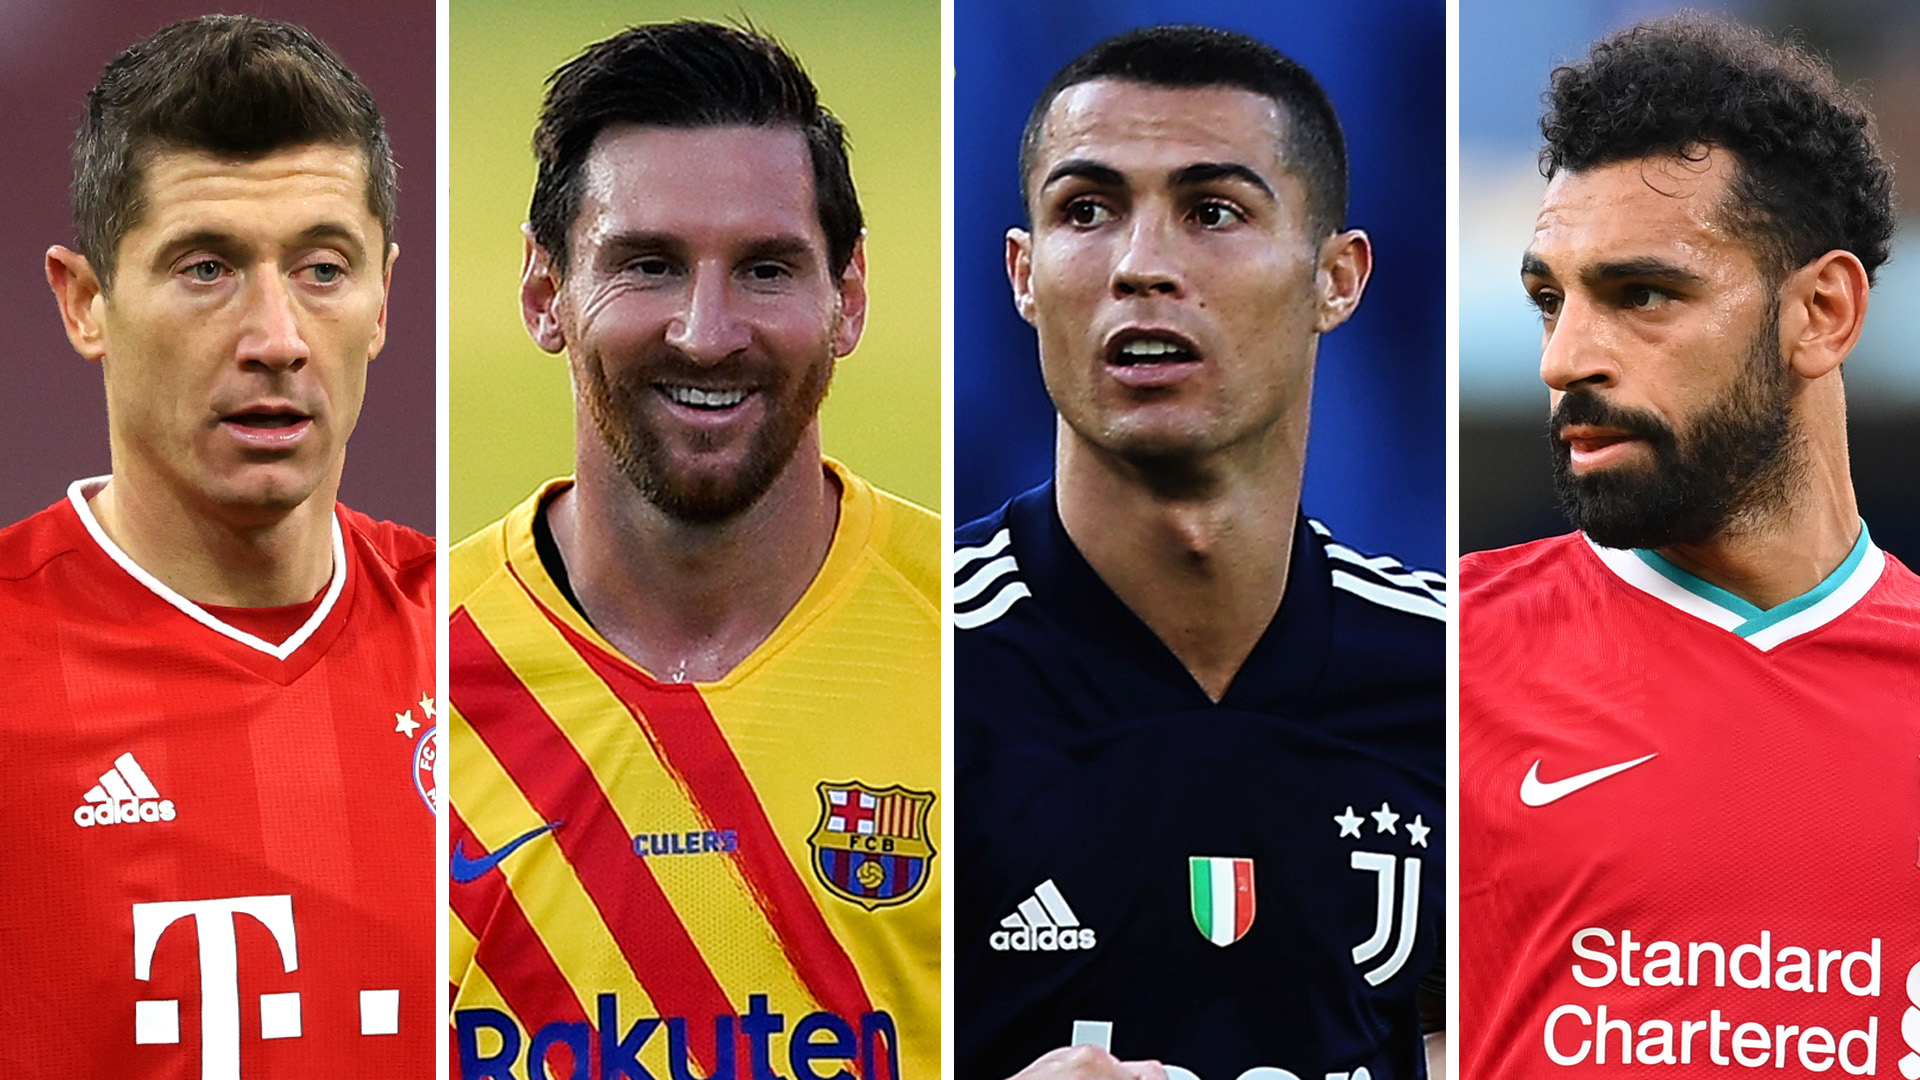 Five Liverpool players nominated for 2020 Best FIFA awards